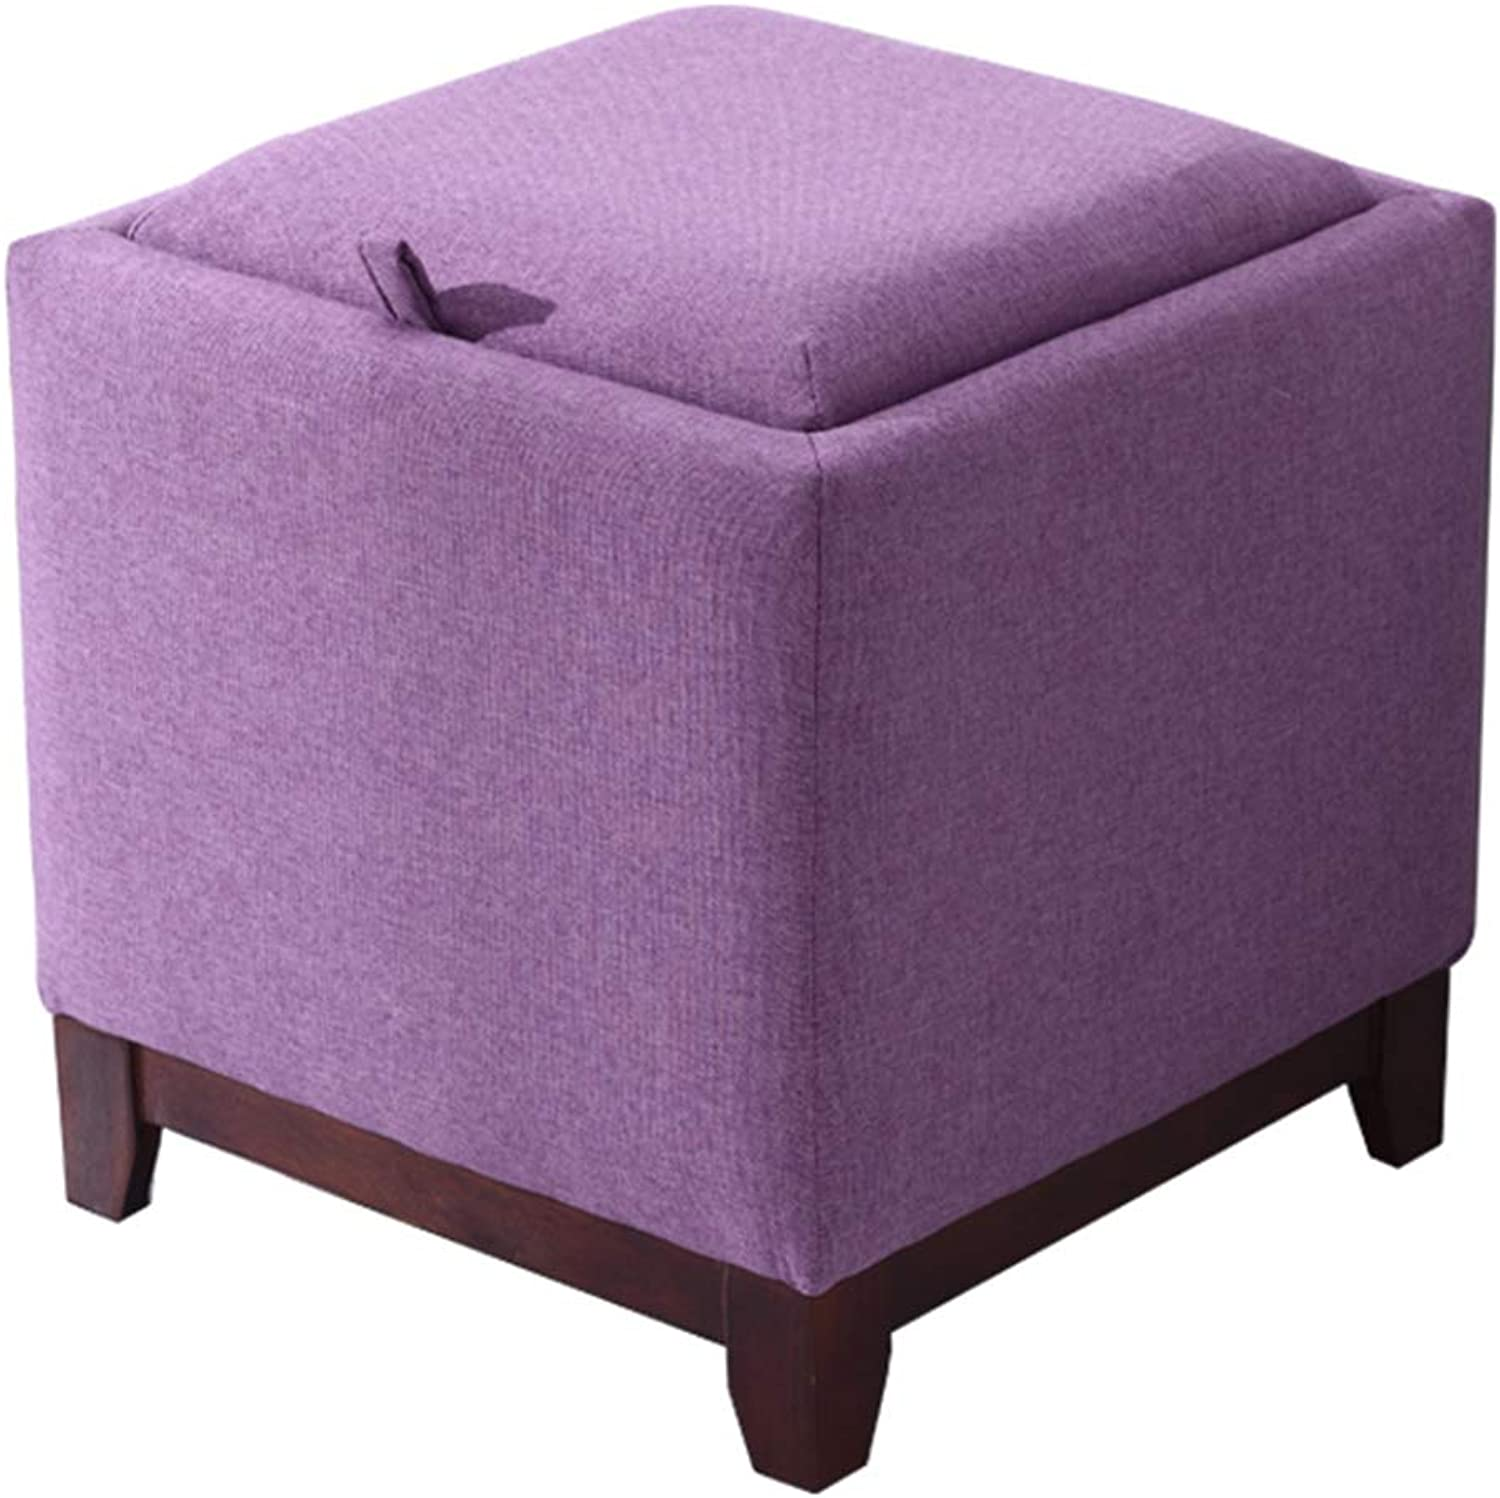 Stool Multi-Function Solid Wood Storage Stool Living Room Home Coffee Table Stool Fabric Change shoes Stool Storage Stool WEIYV (color   Purple, Size   40  40  42cm)